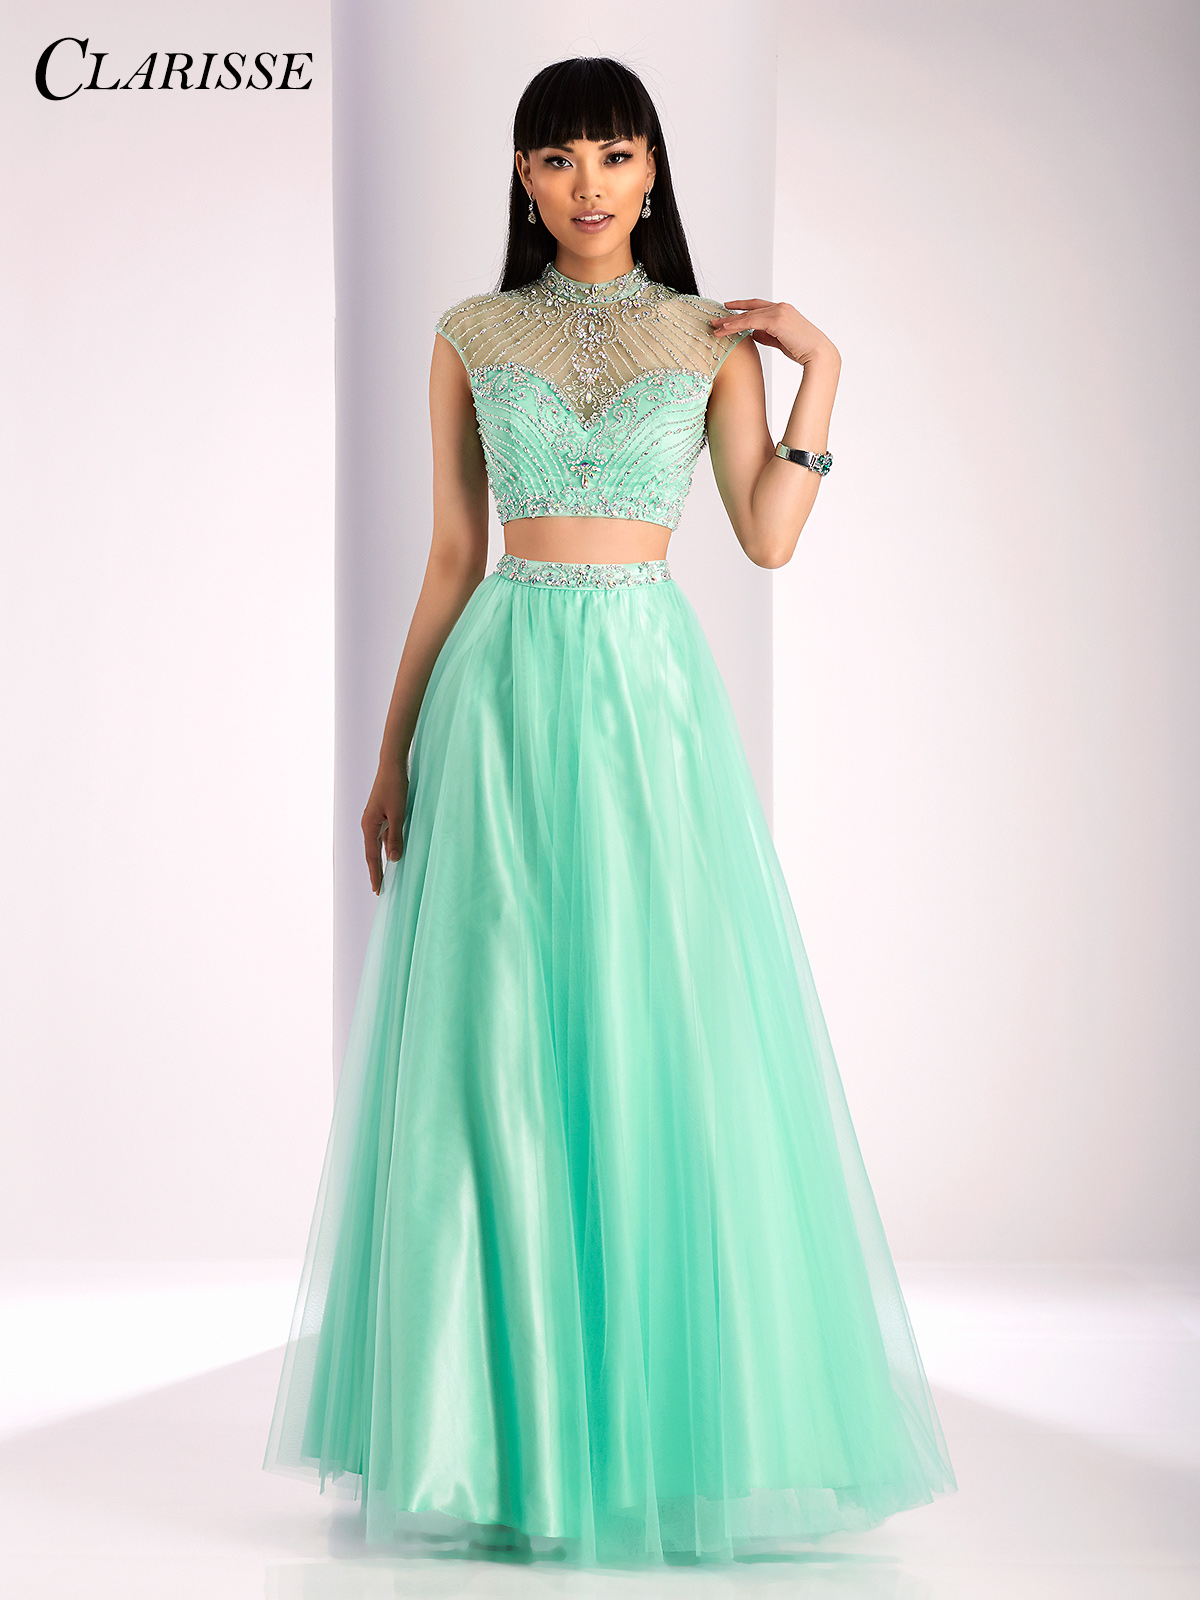 Amazing Sears Prom Dresses Plus Size Gallery Wedding Ideas